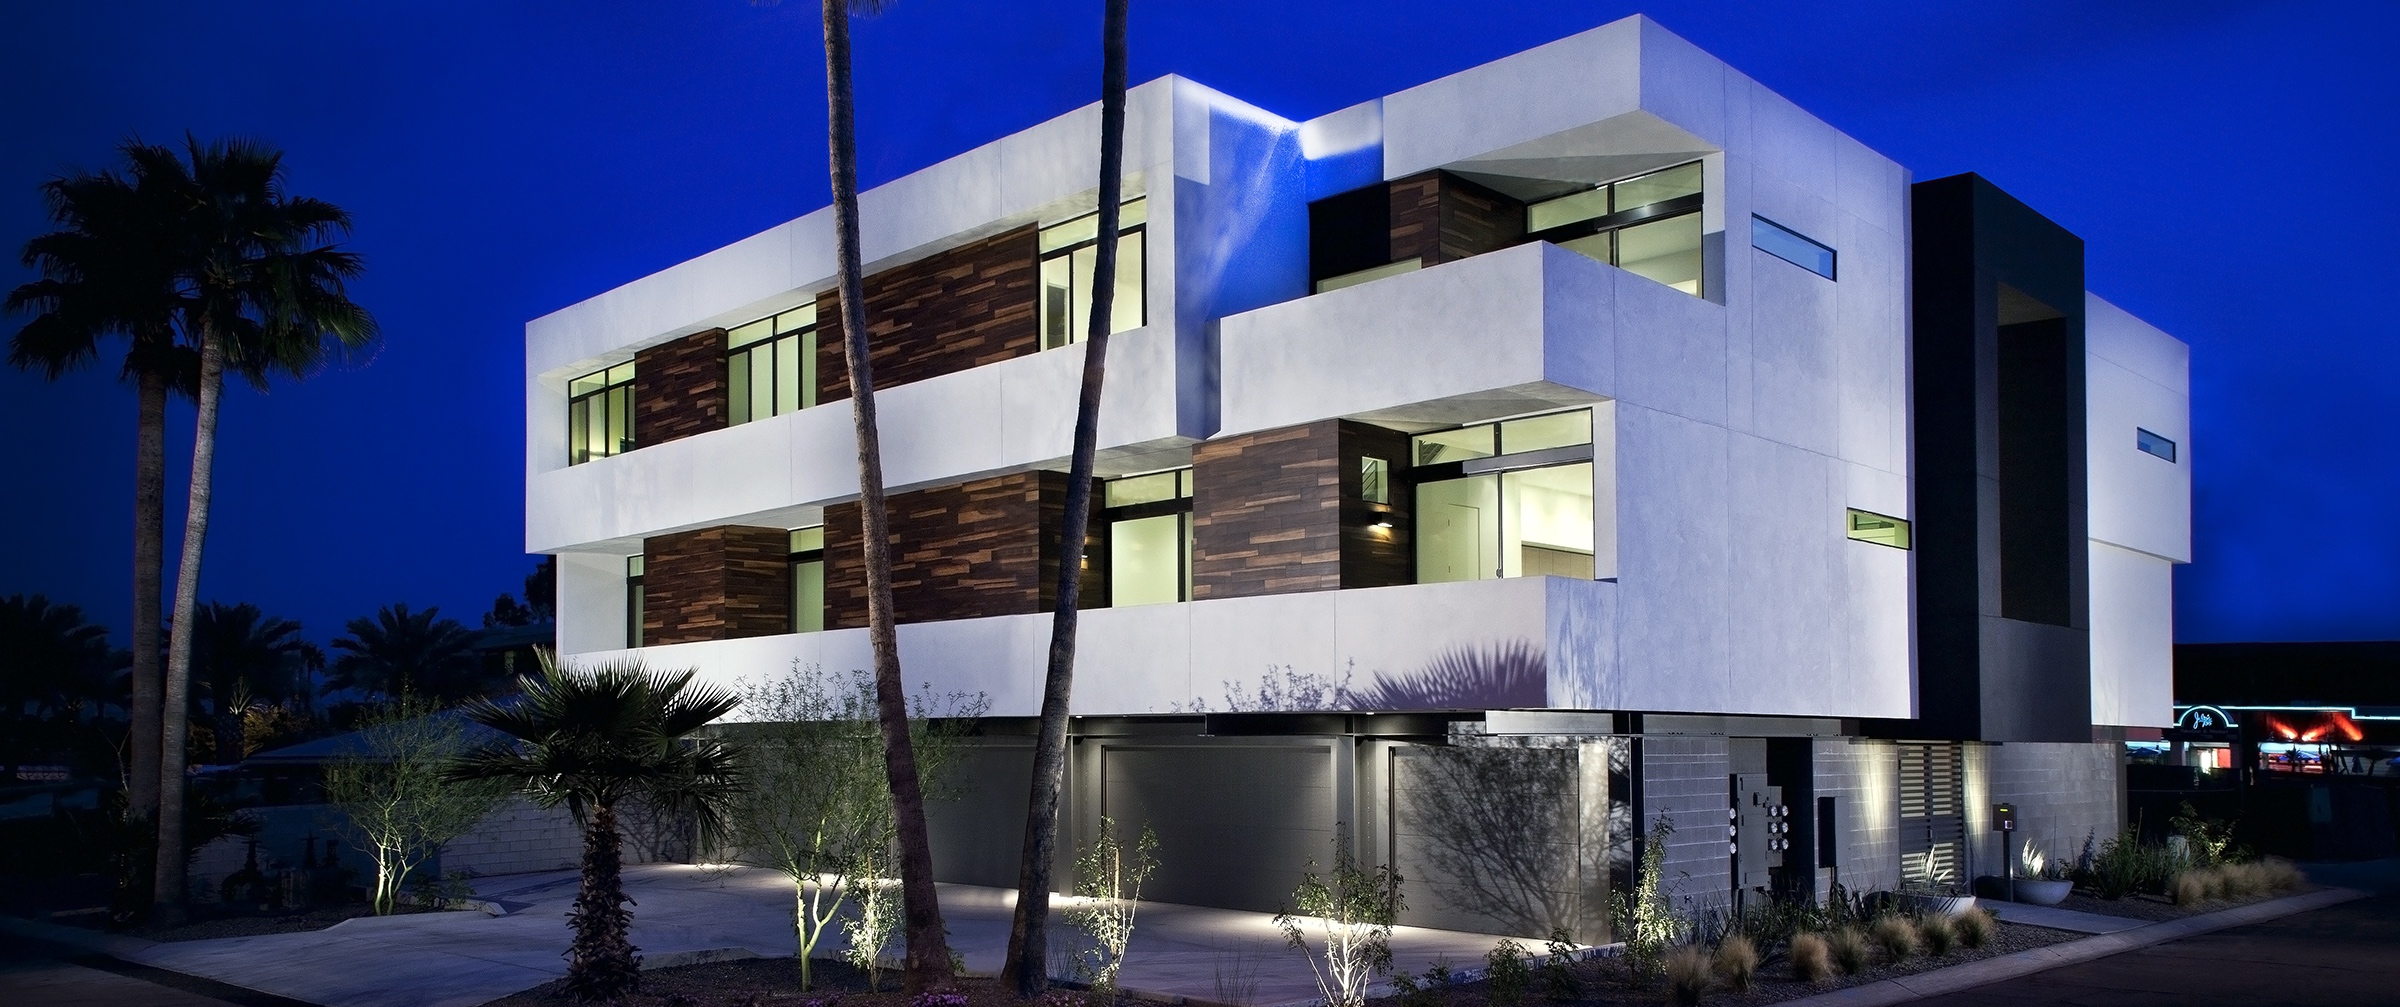 Mz Townhomes 8 Units Downtown Scottsdale Multifamily For Sale